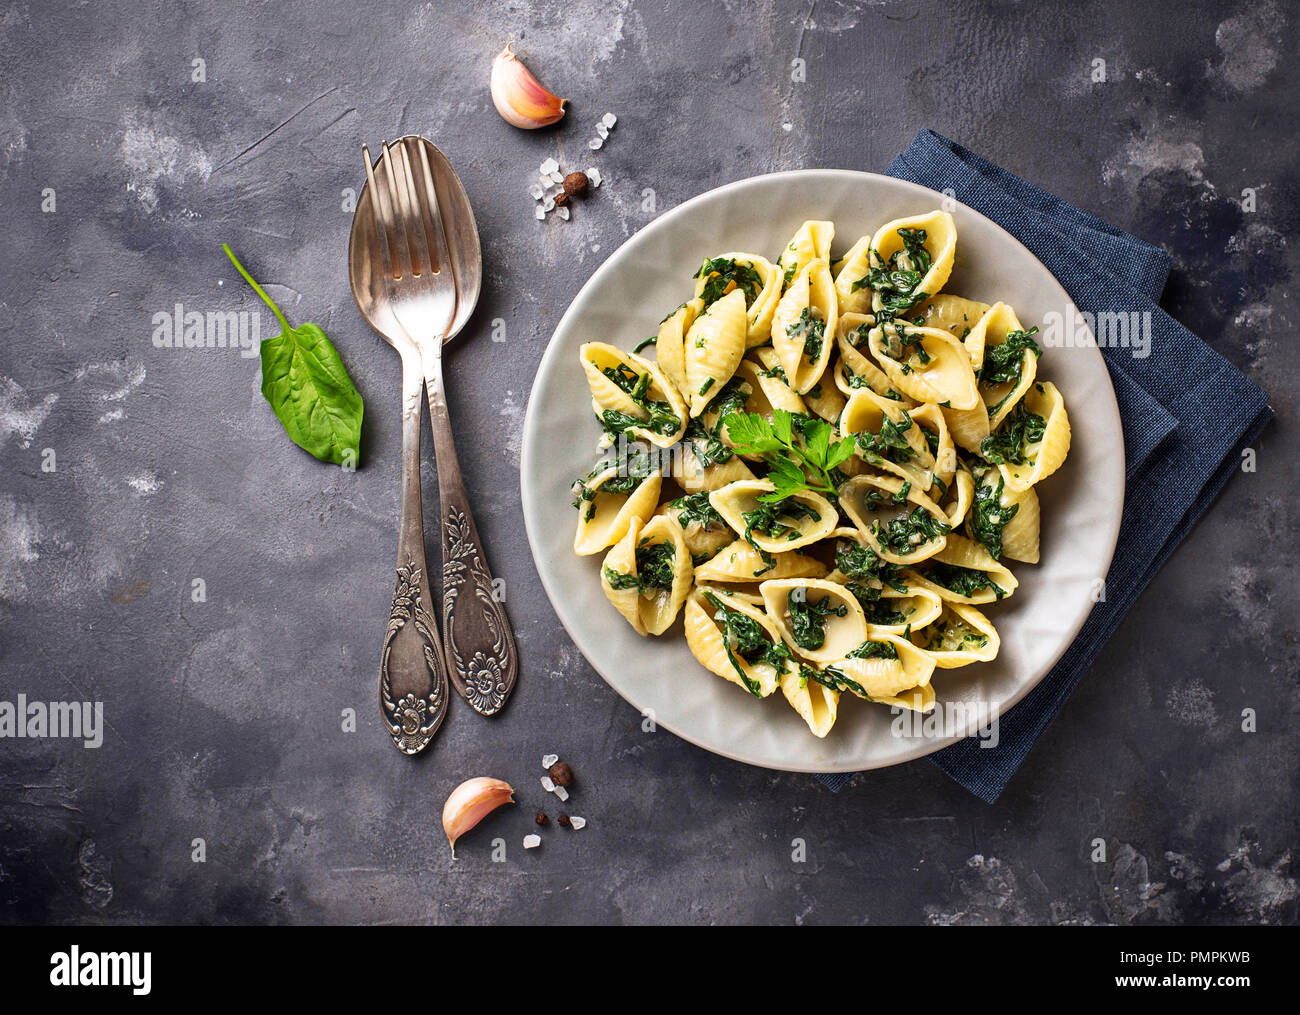 Conchiglioni pasta with spinach in creamy sauce  - Stock Image